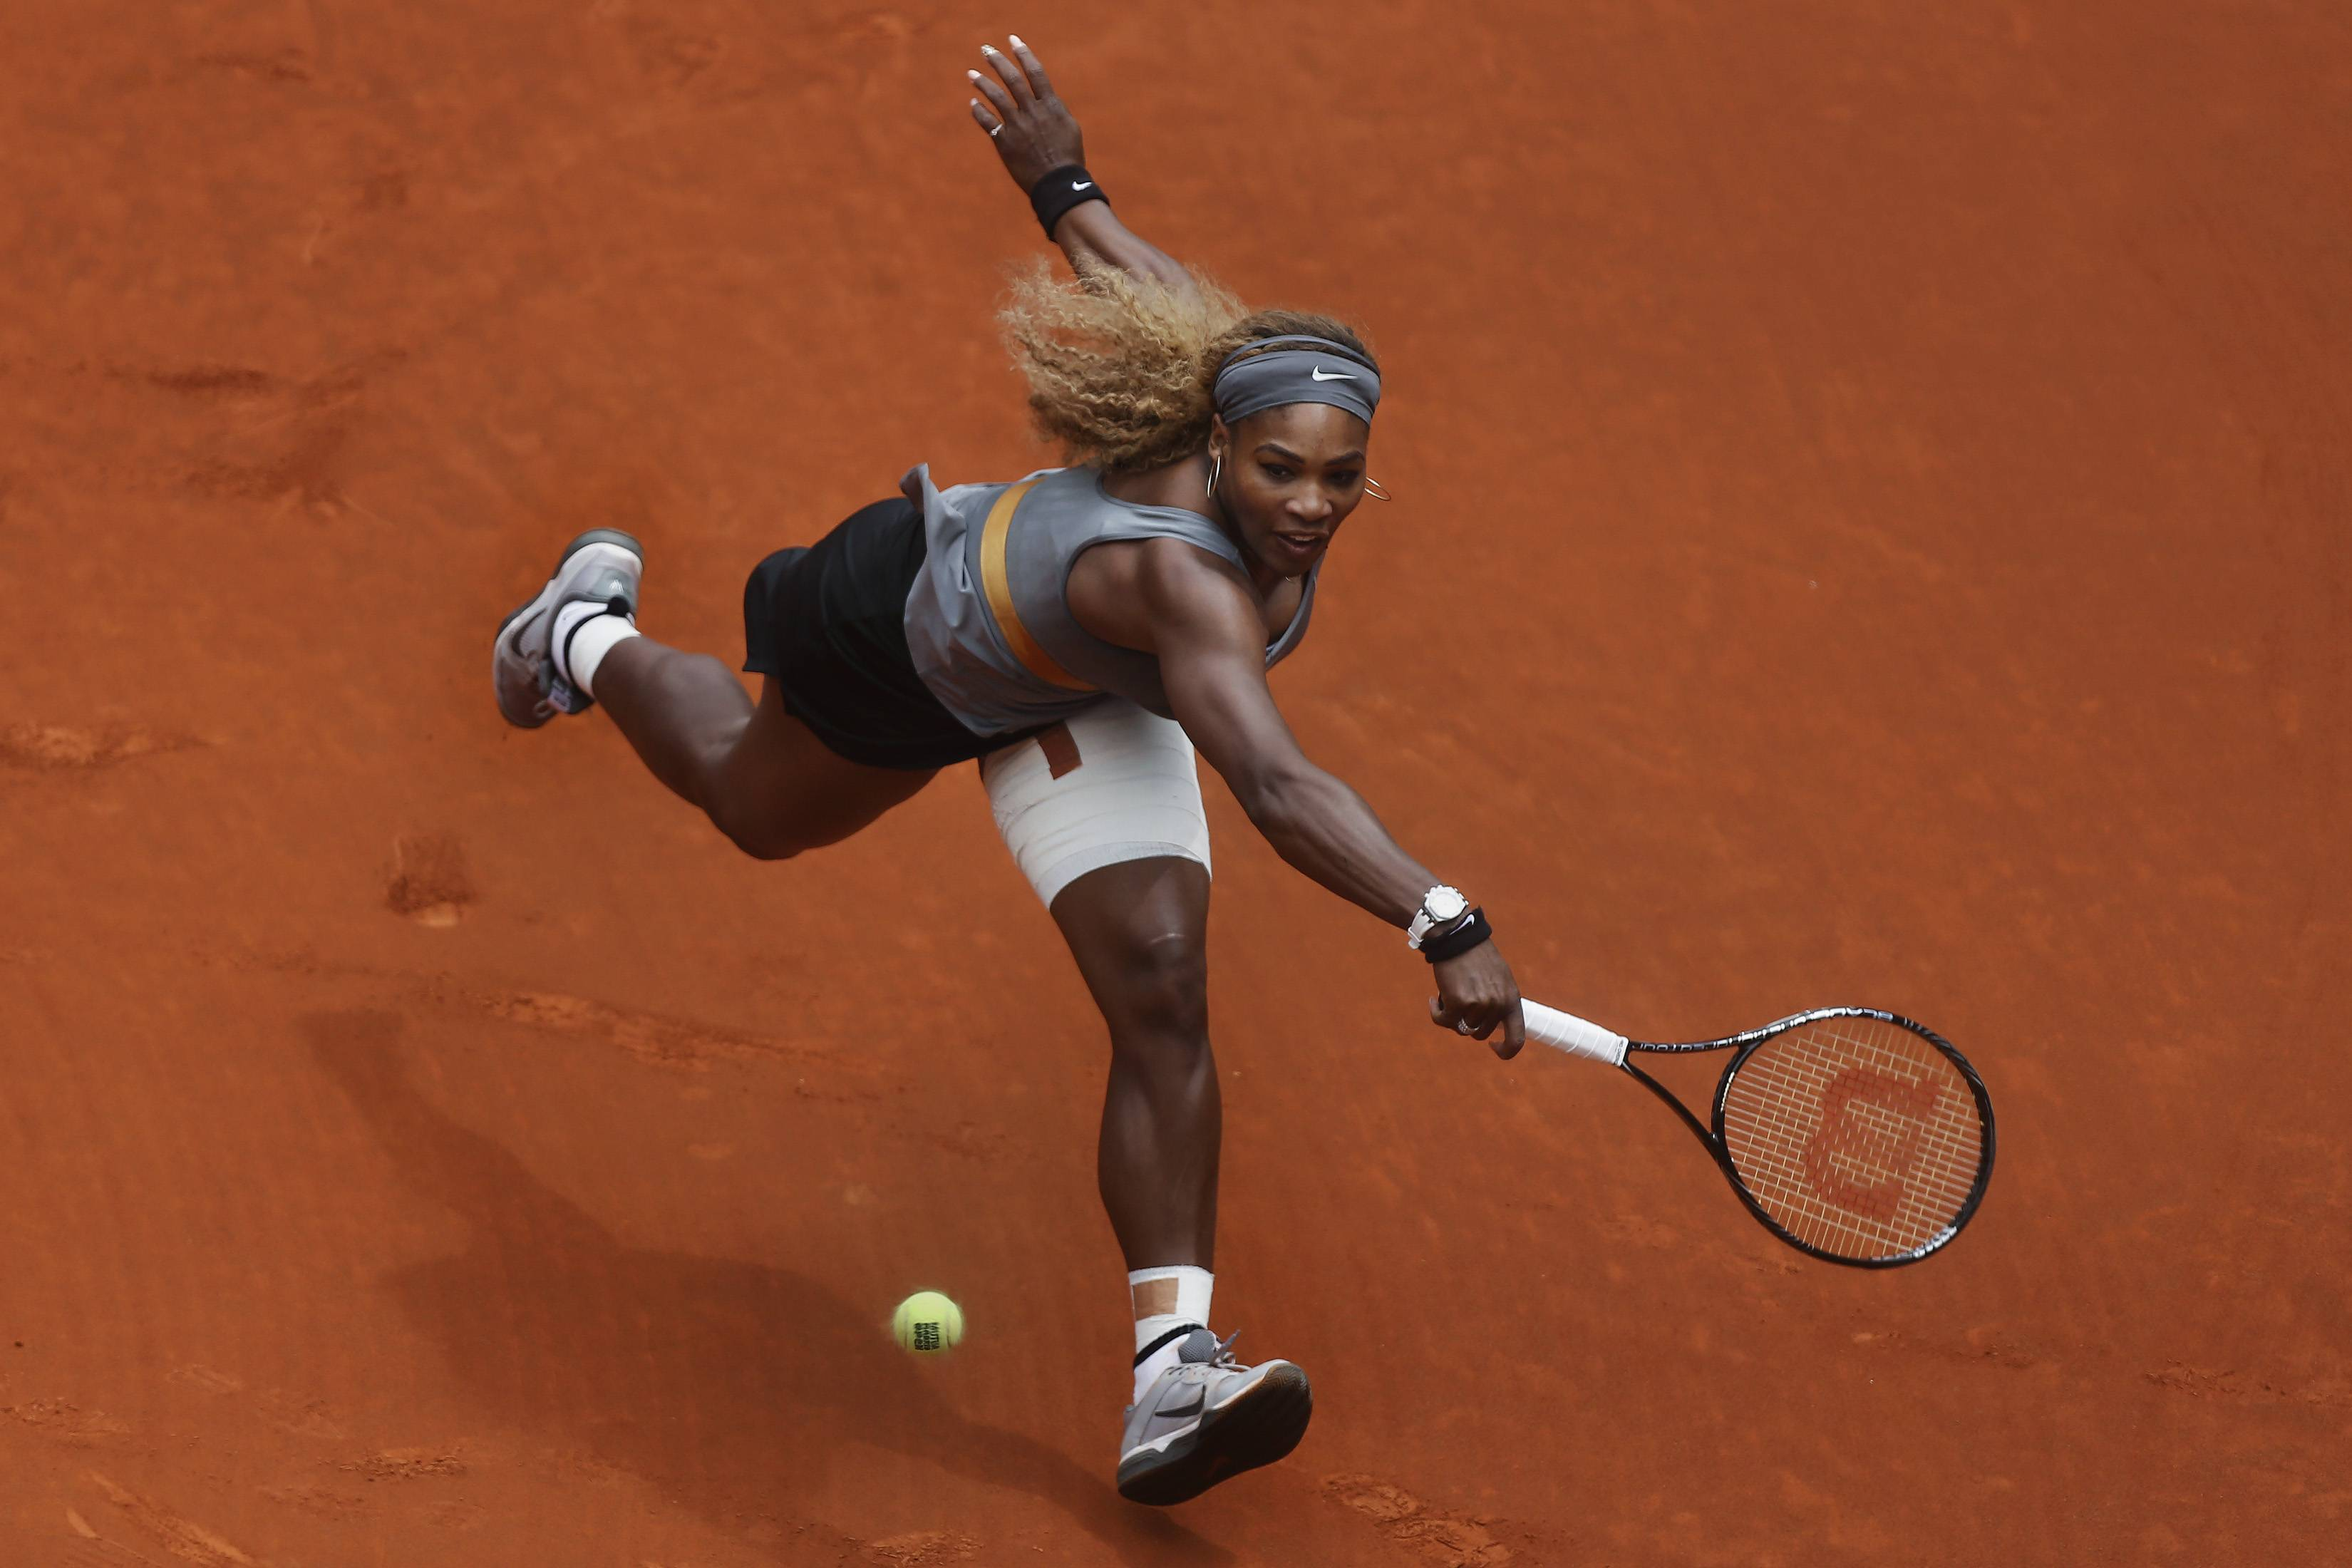 Serena Williams from U.S. returns the ball during a Madrid Open tennis tournament match against Shuai Peng from China, in Madrid, Spain, Wednesday, May 7, 2014.